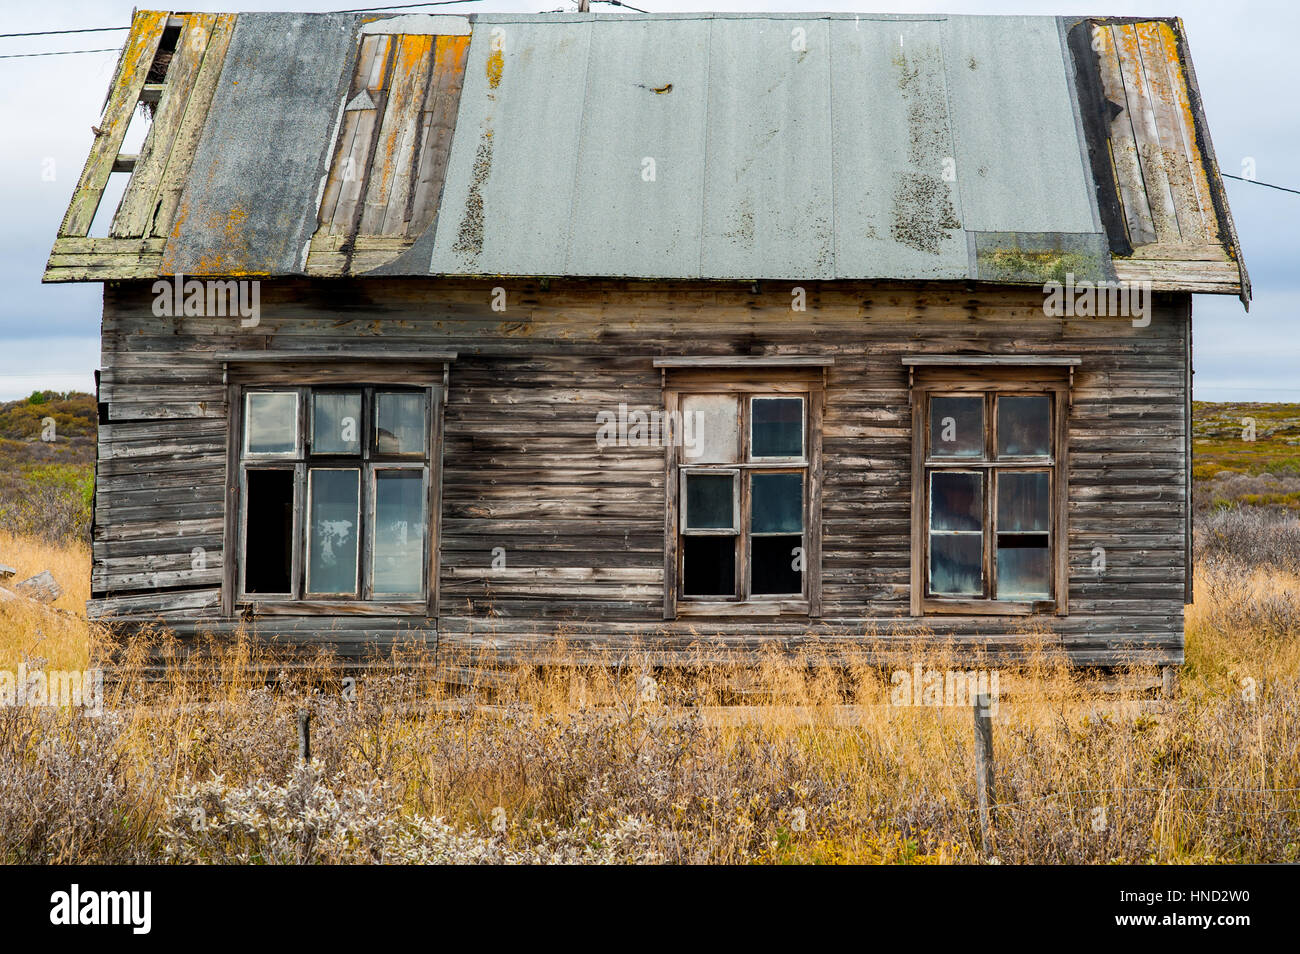 Old wooden decrepit shabby house in need of repair with damaged roof and broken windows - Stock Image